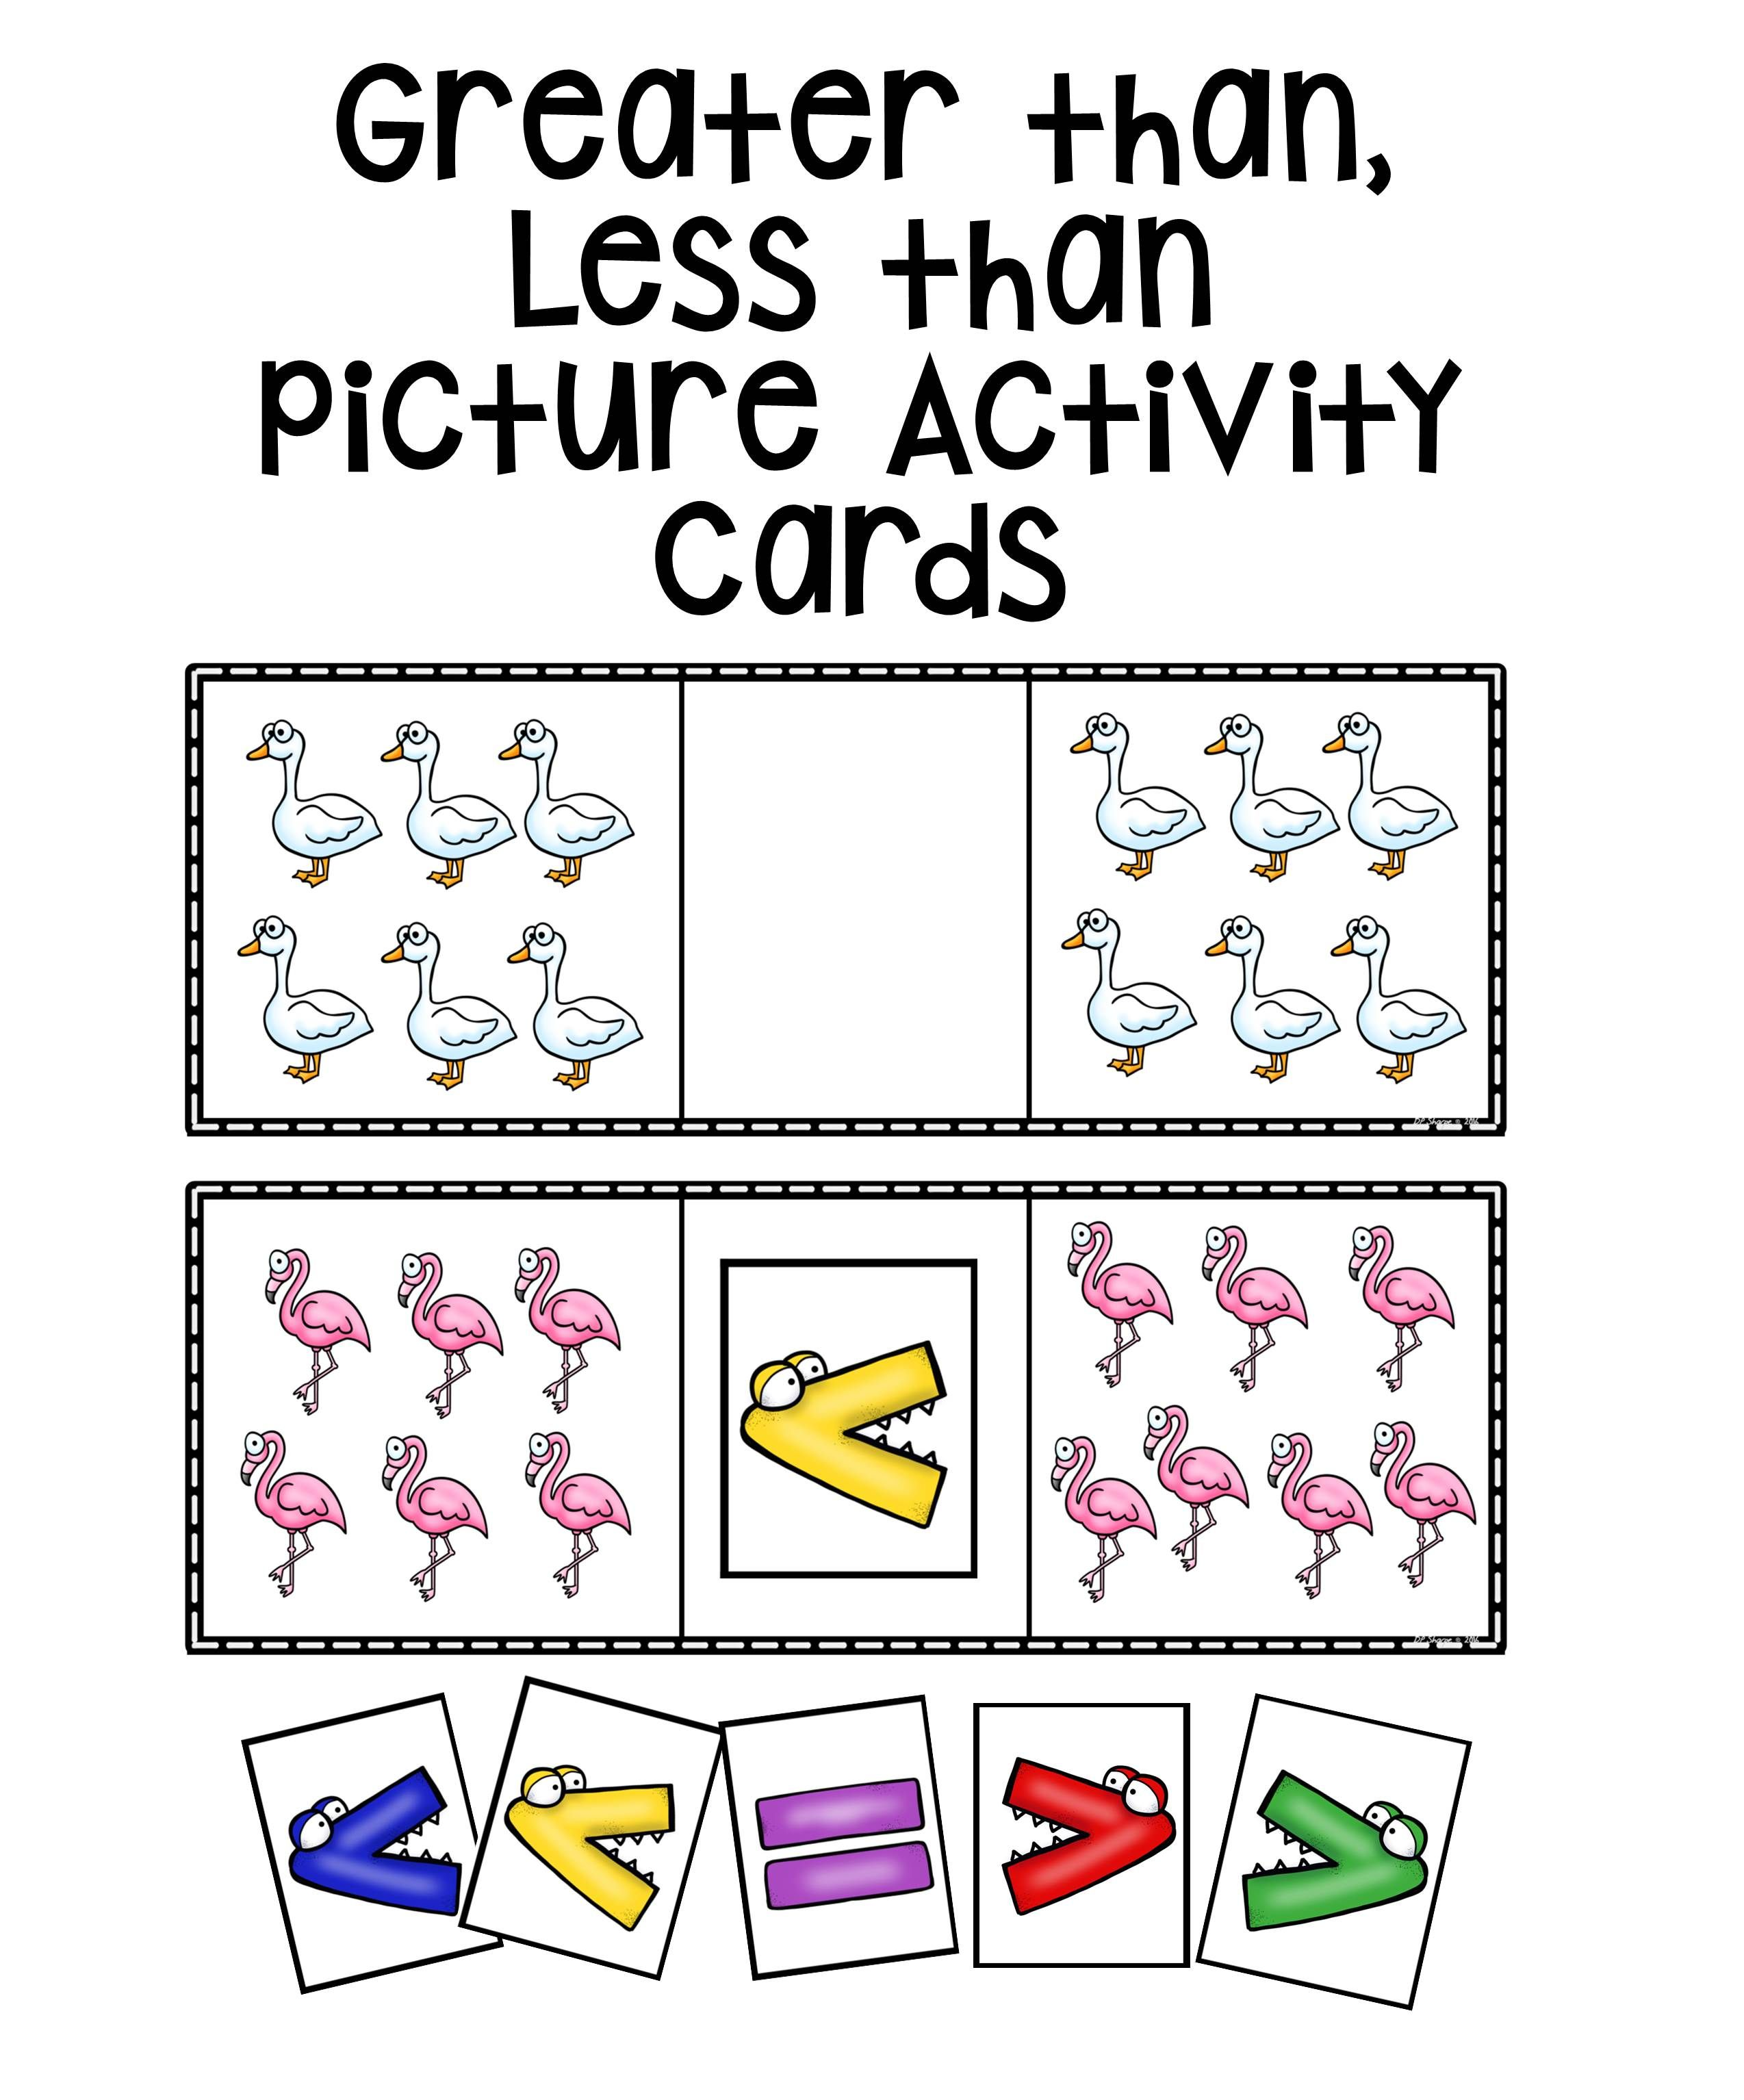 A Fun Activity For Young Learners To Practice Counting And